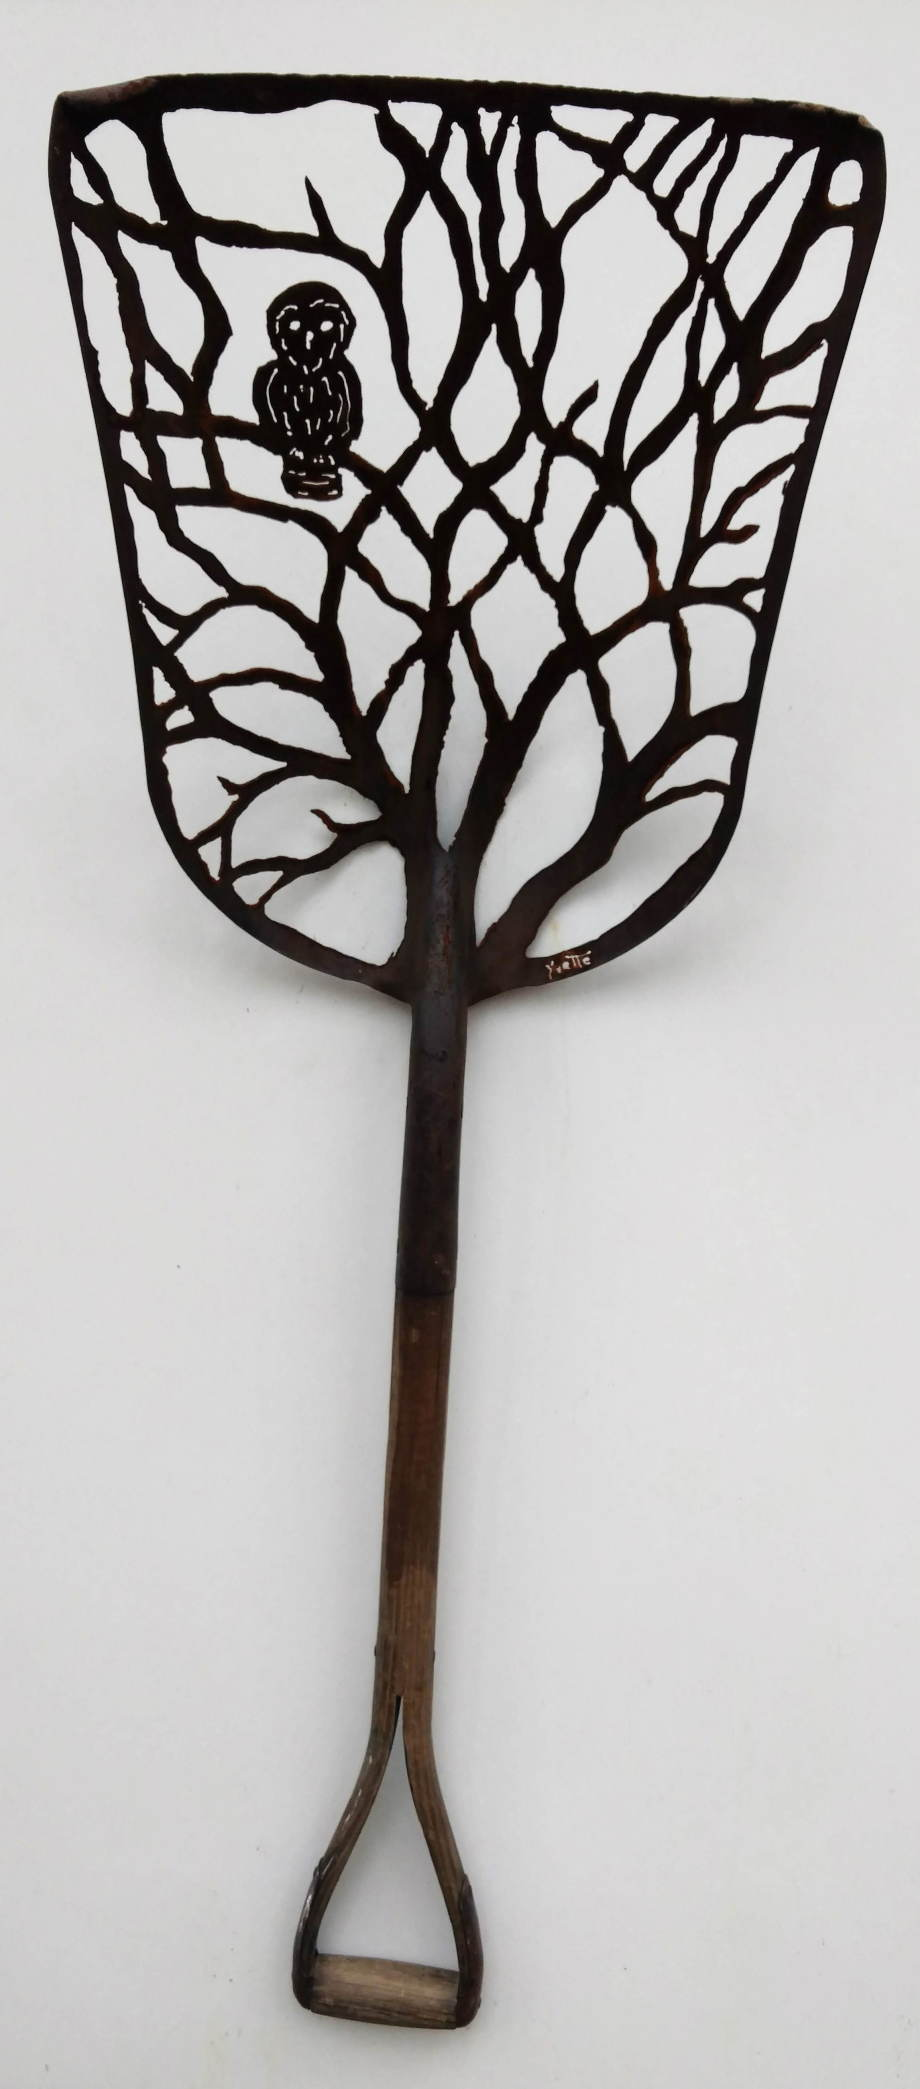 Owl Tree Antique shovel